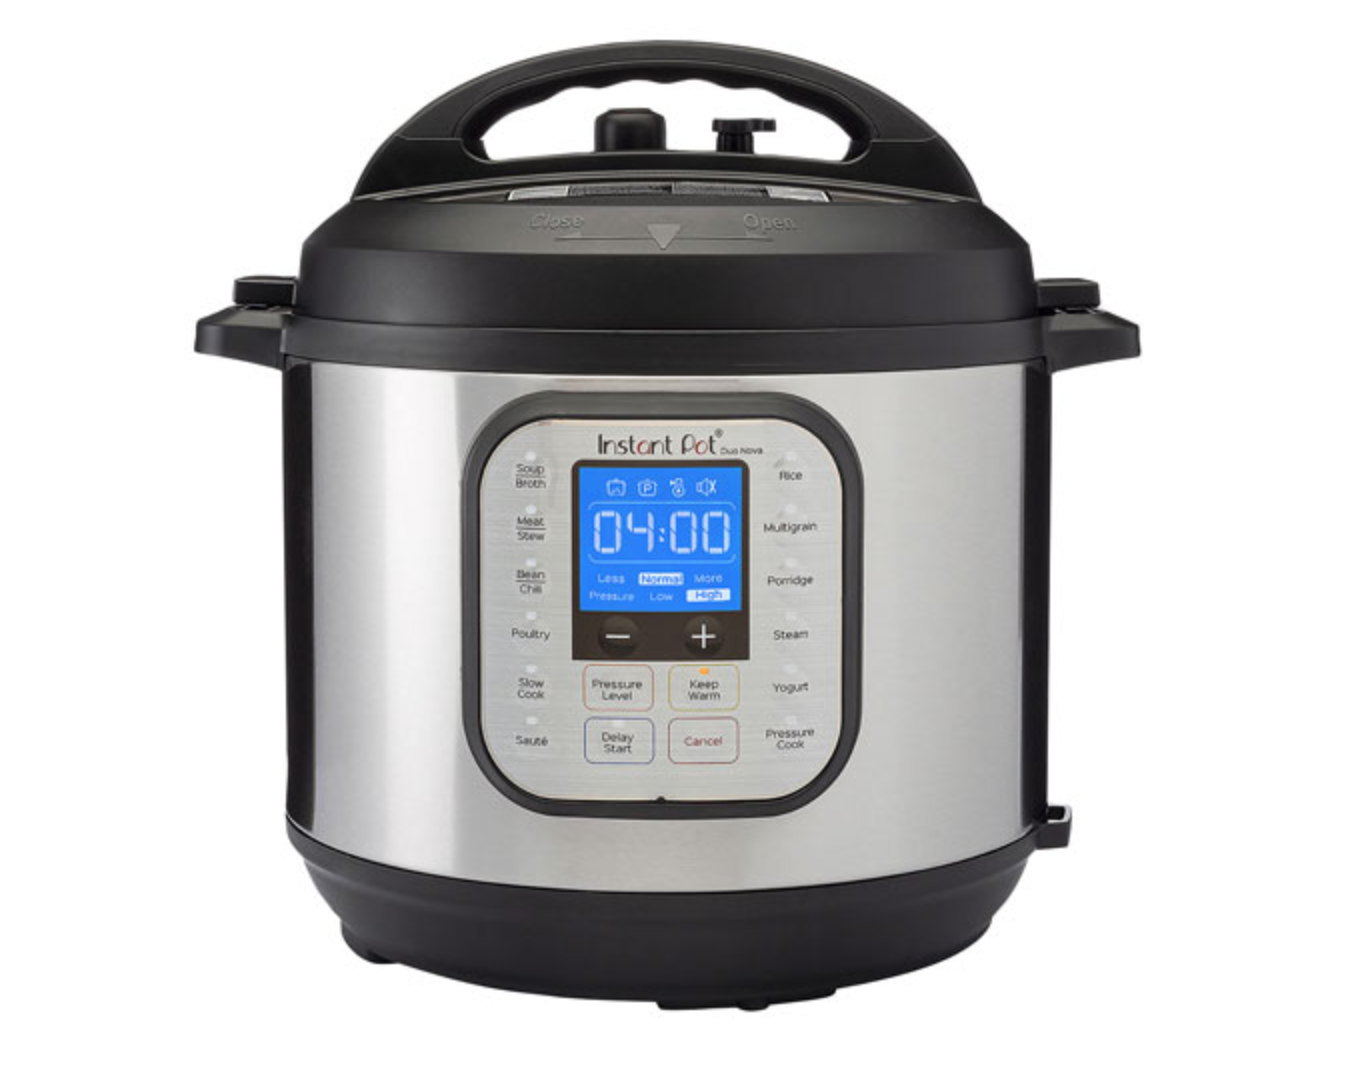 image of an Instant Pot